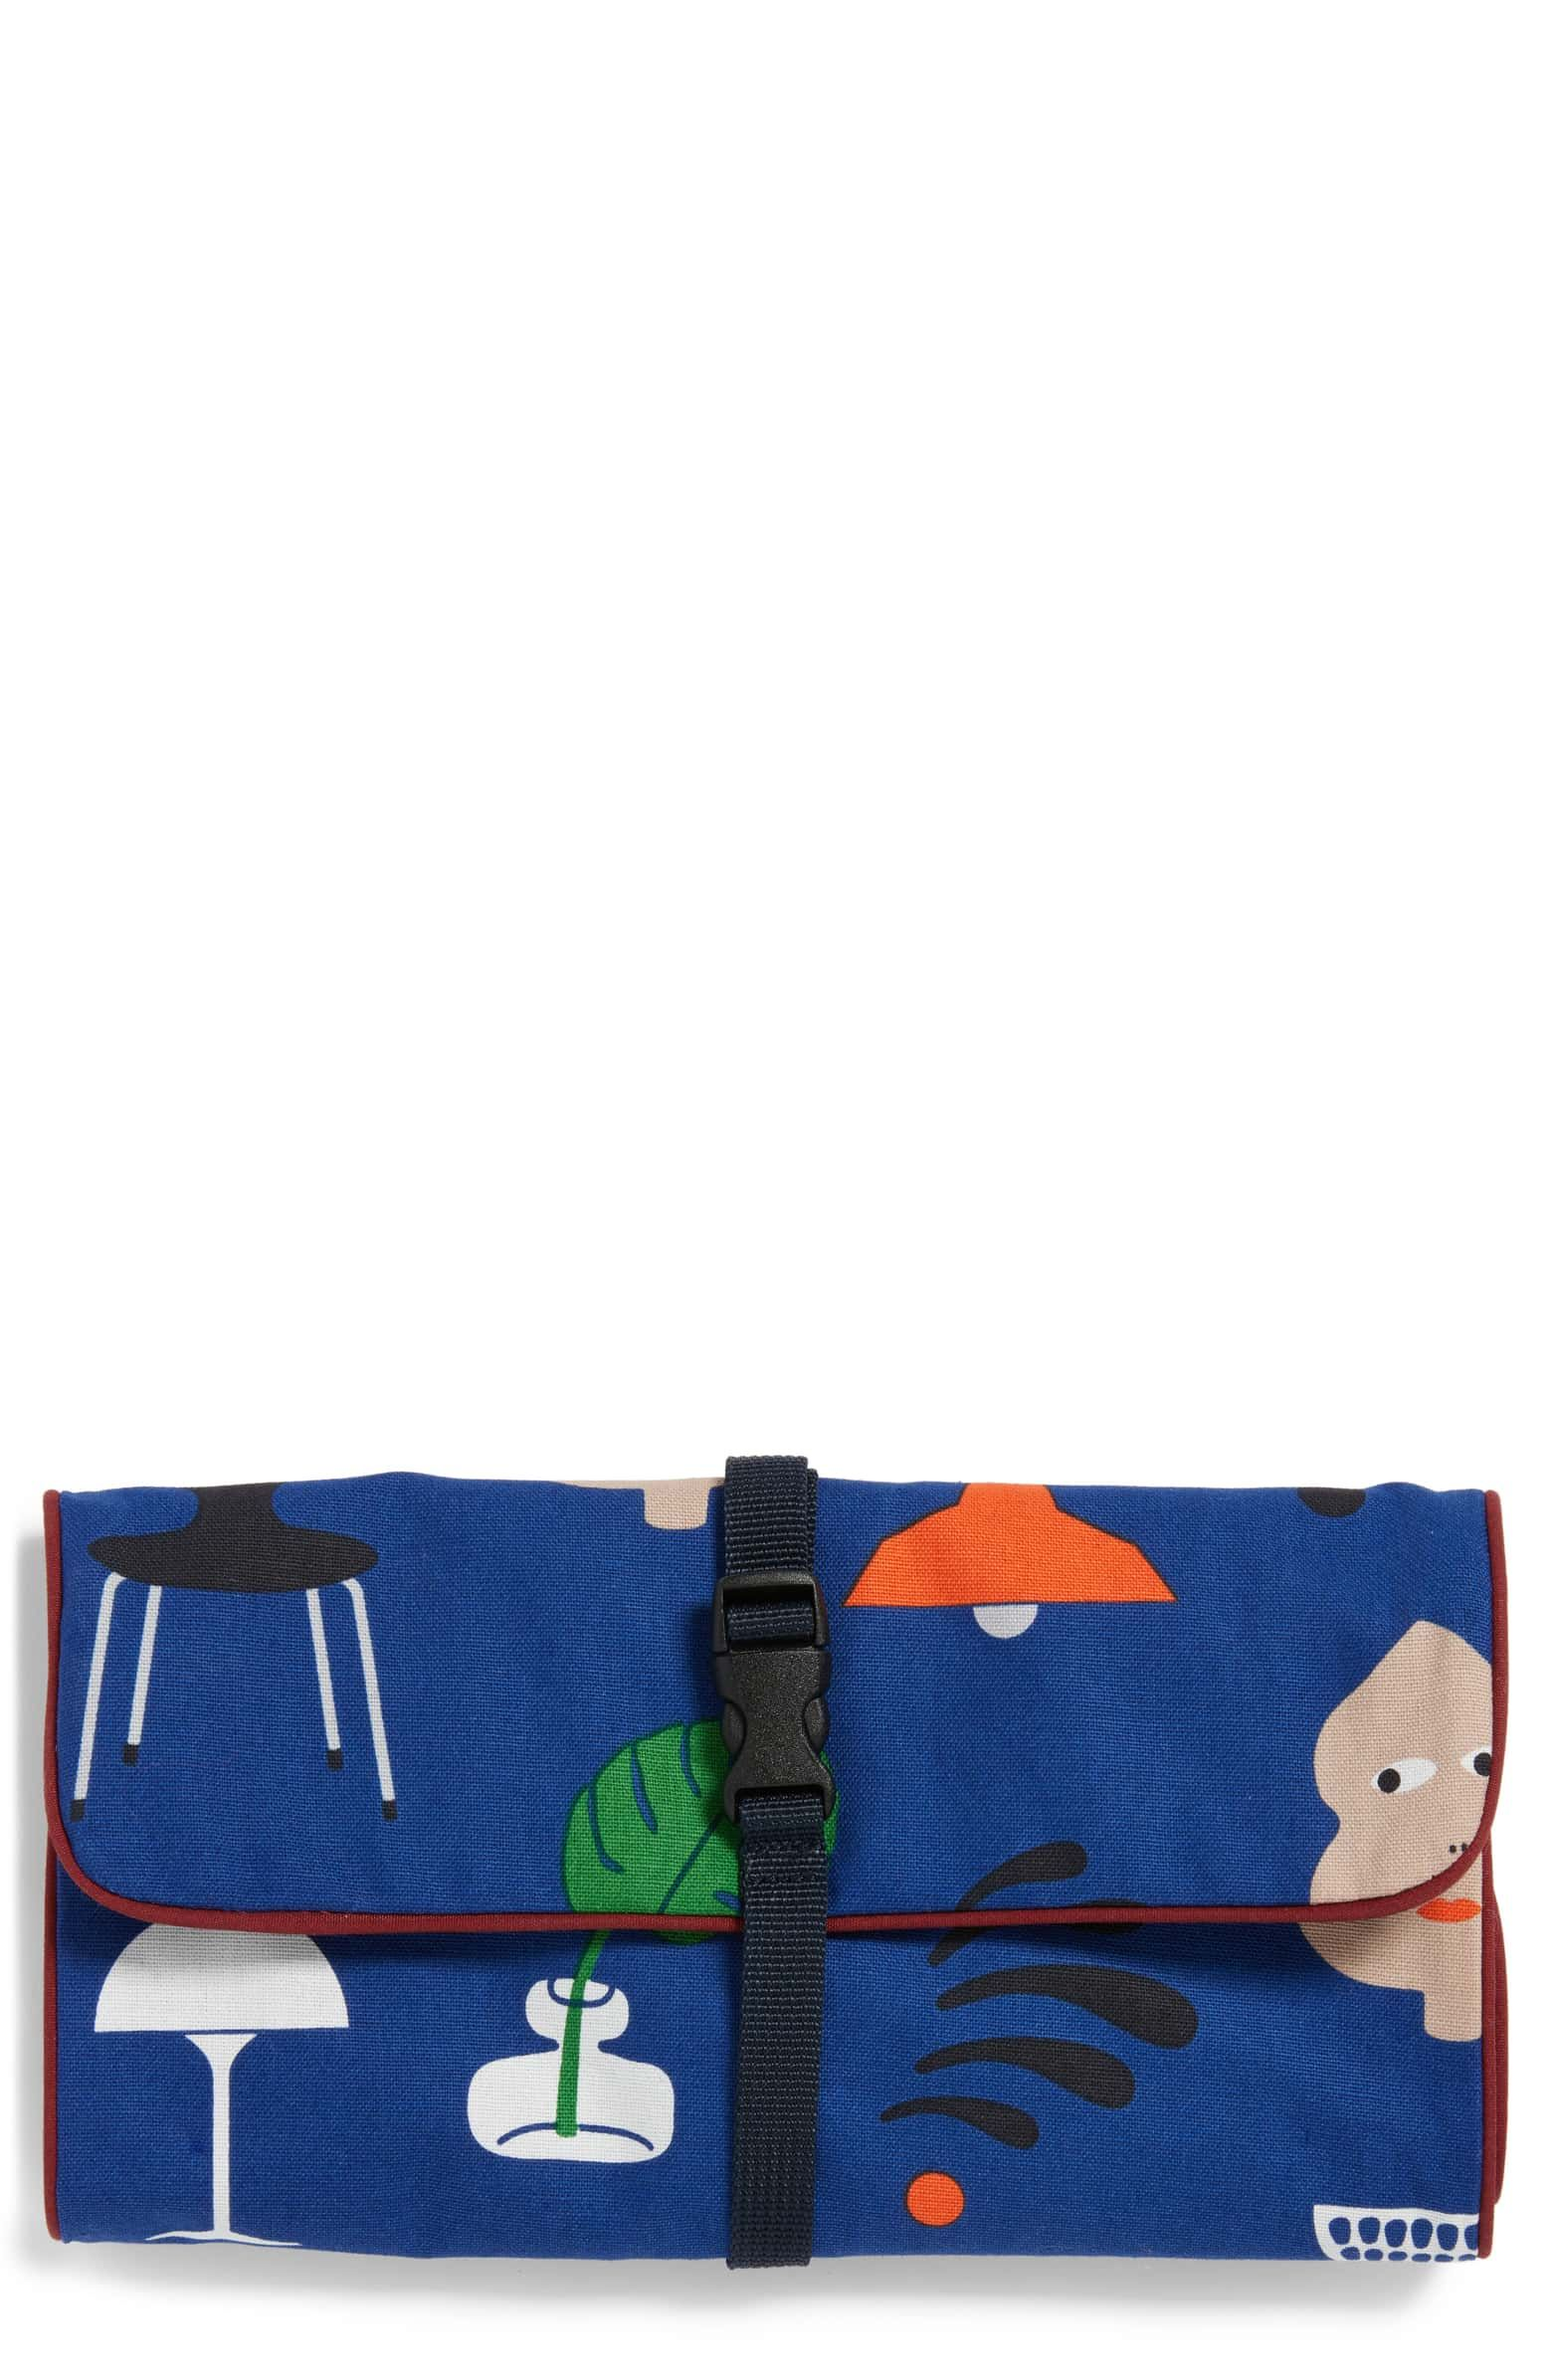 0535421f5aa0 OhhLaLa Home Roll Toiletry Pouch, Main, color, BLUE   255555 in 2019 ...